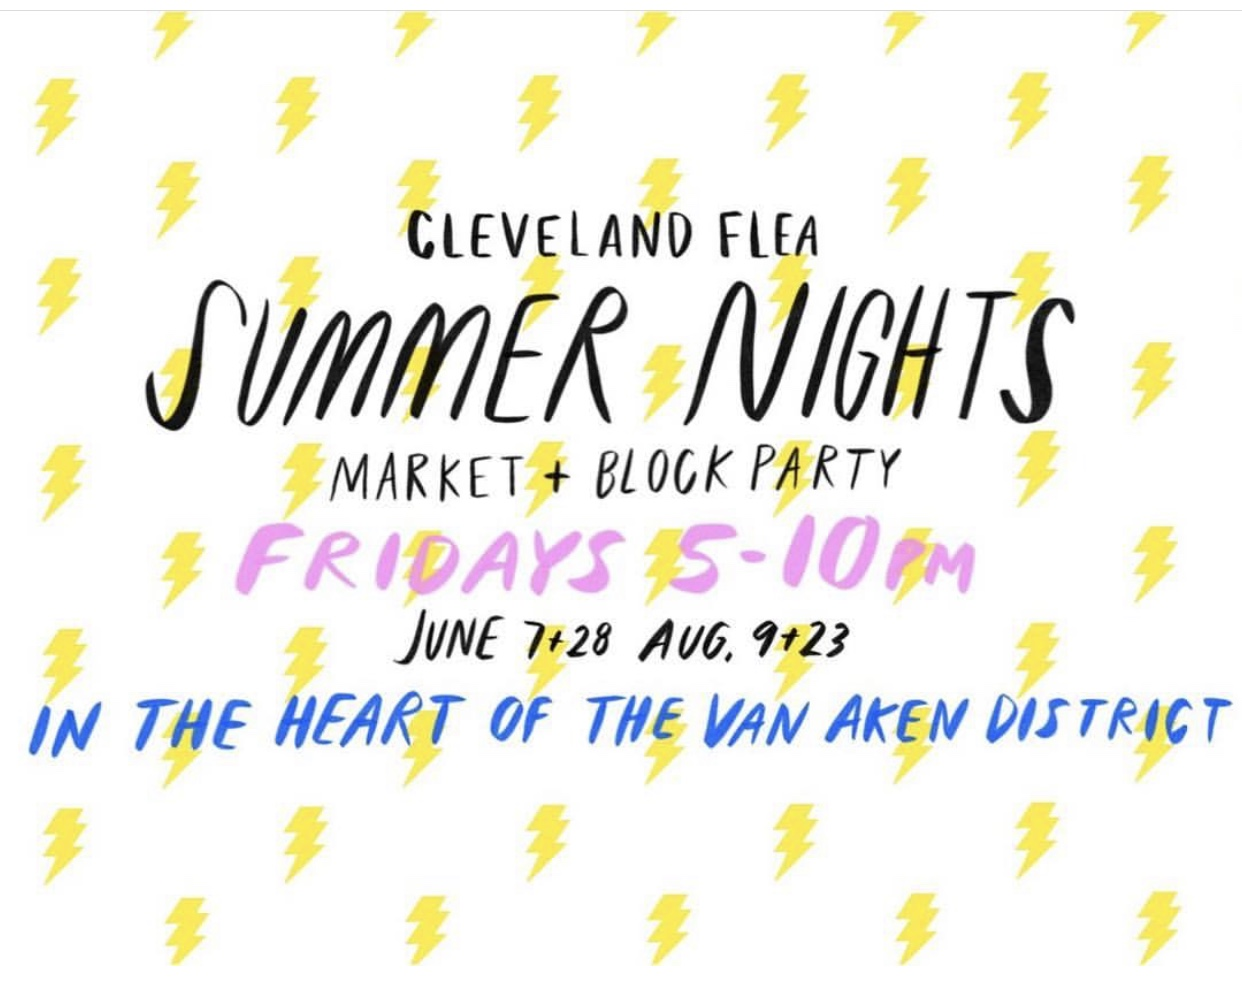 AUGUST 9, 2019 // 5-10PM   https://www.theclevelandflea.com/